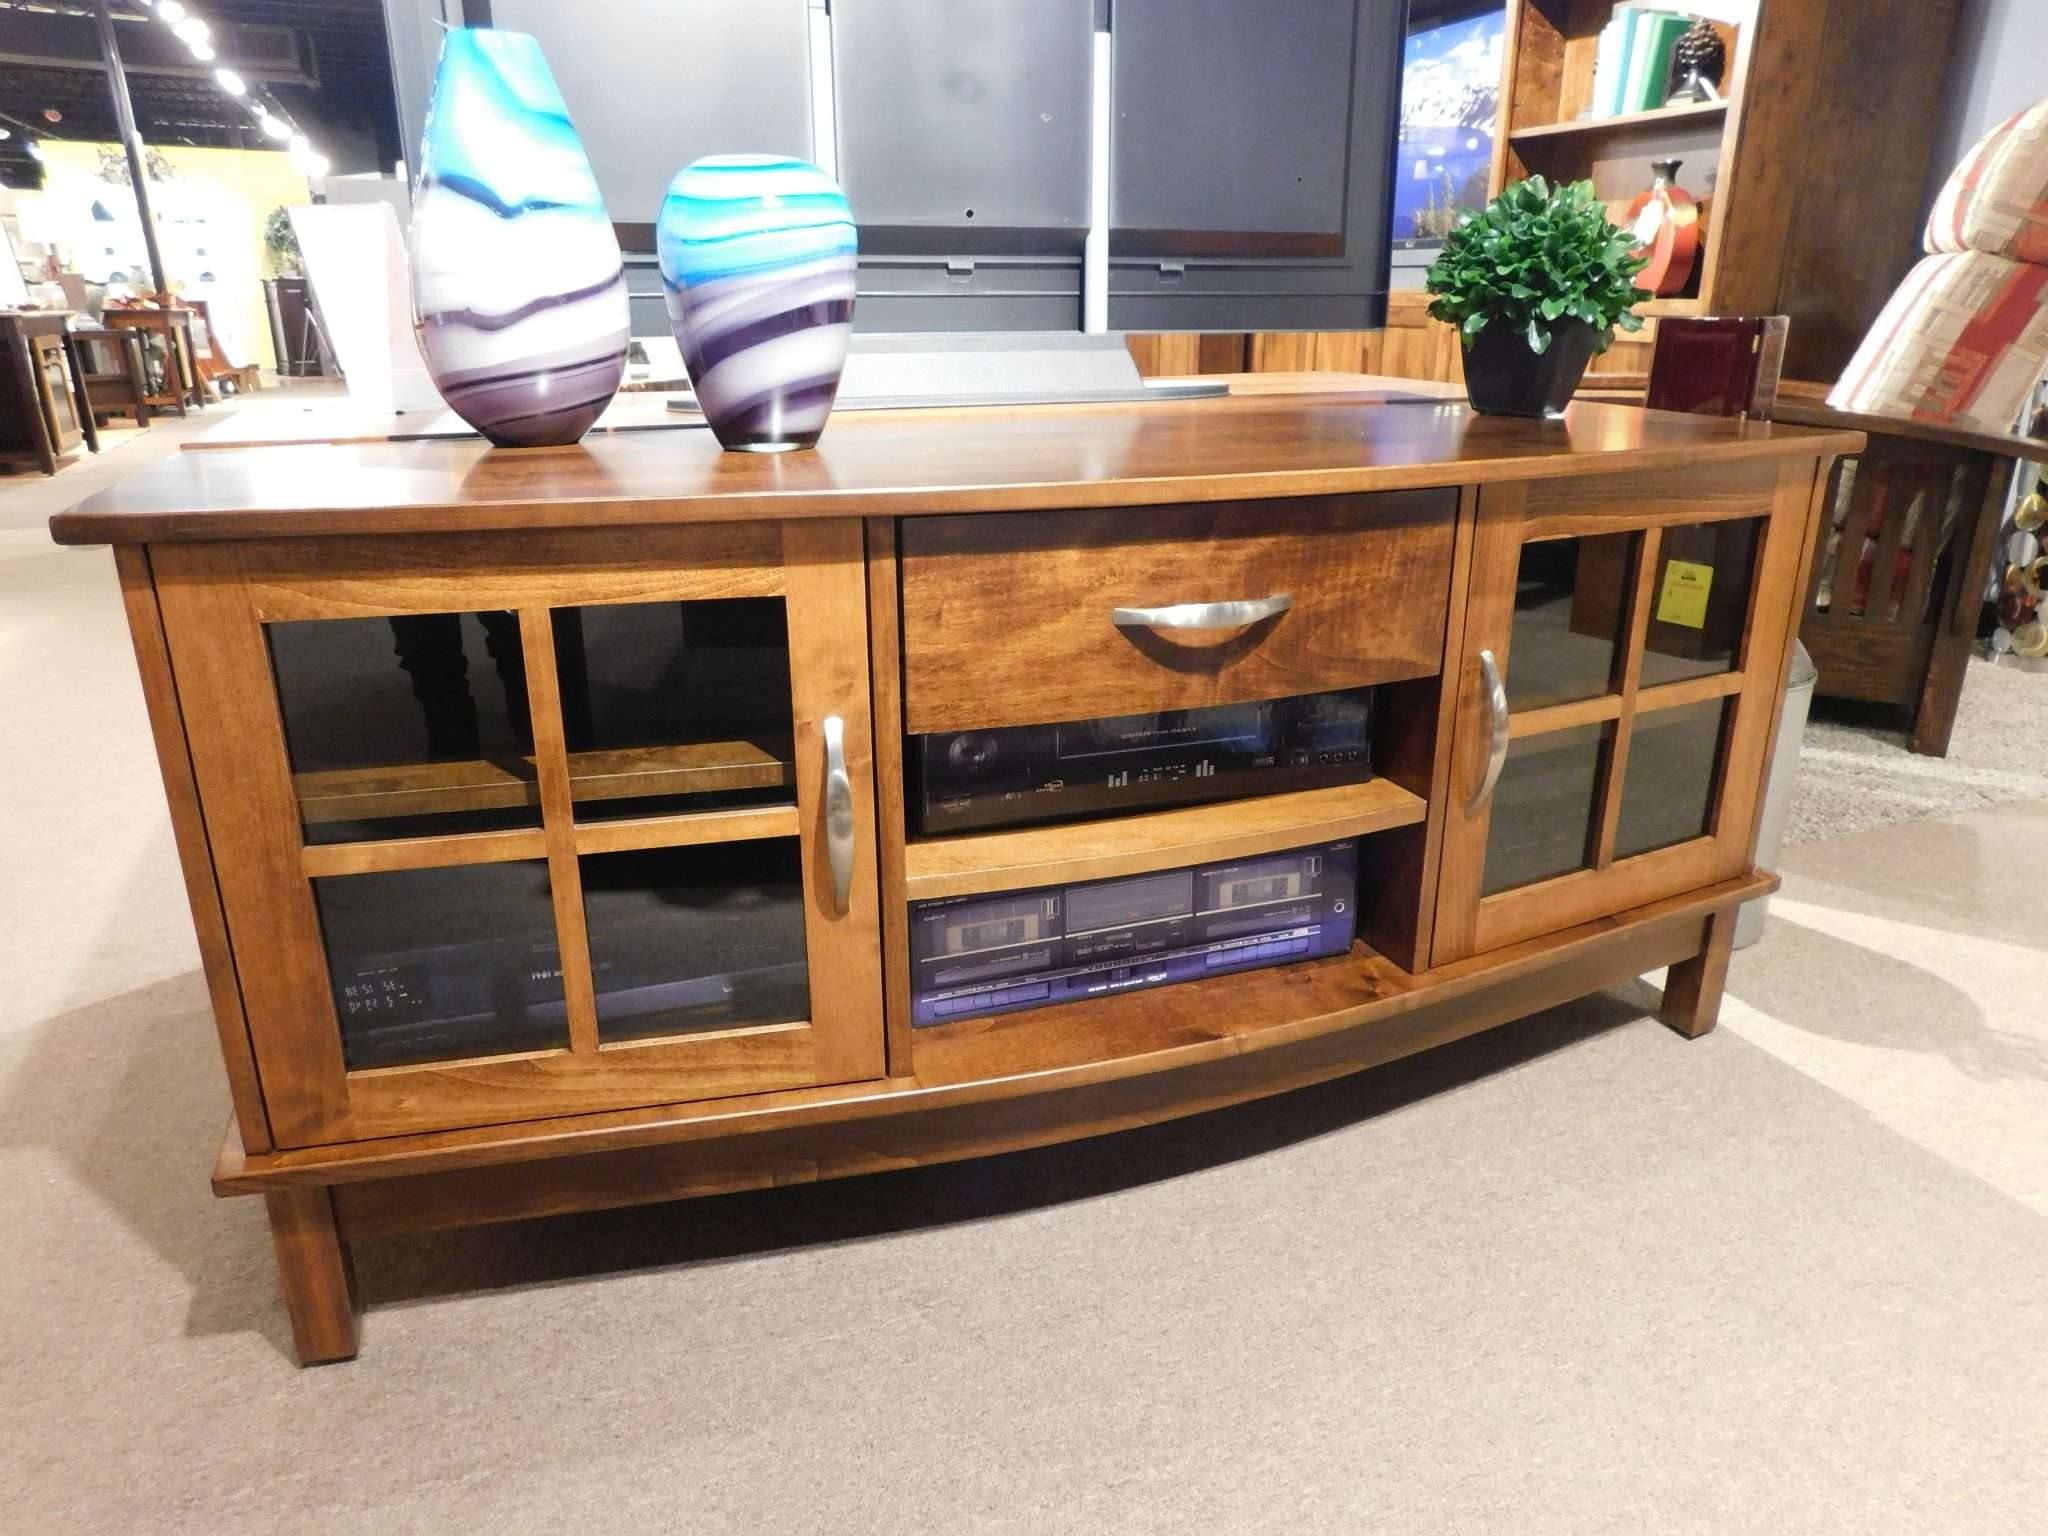 Perfect Maple Tv Stand 65 In Modern Home Decor Inspiration With In Maple Tv Stands (View 12 of 15)